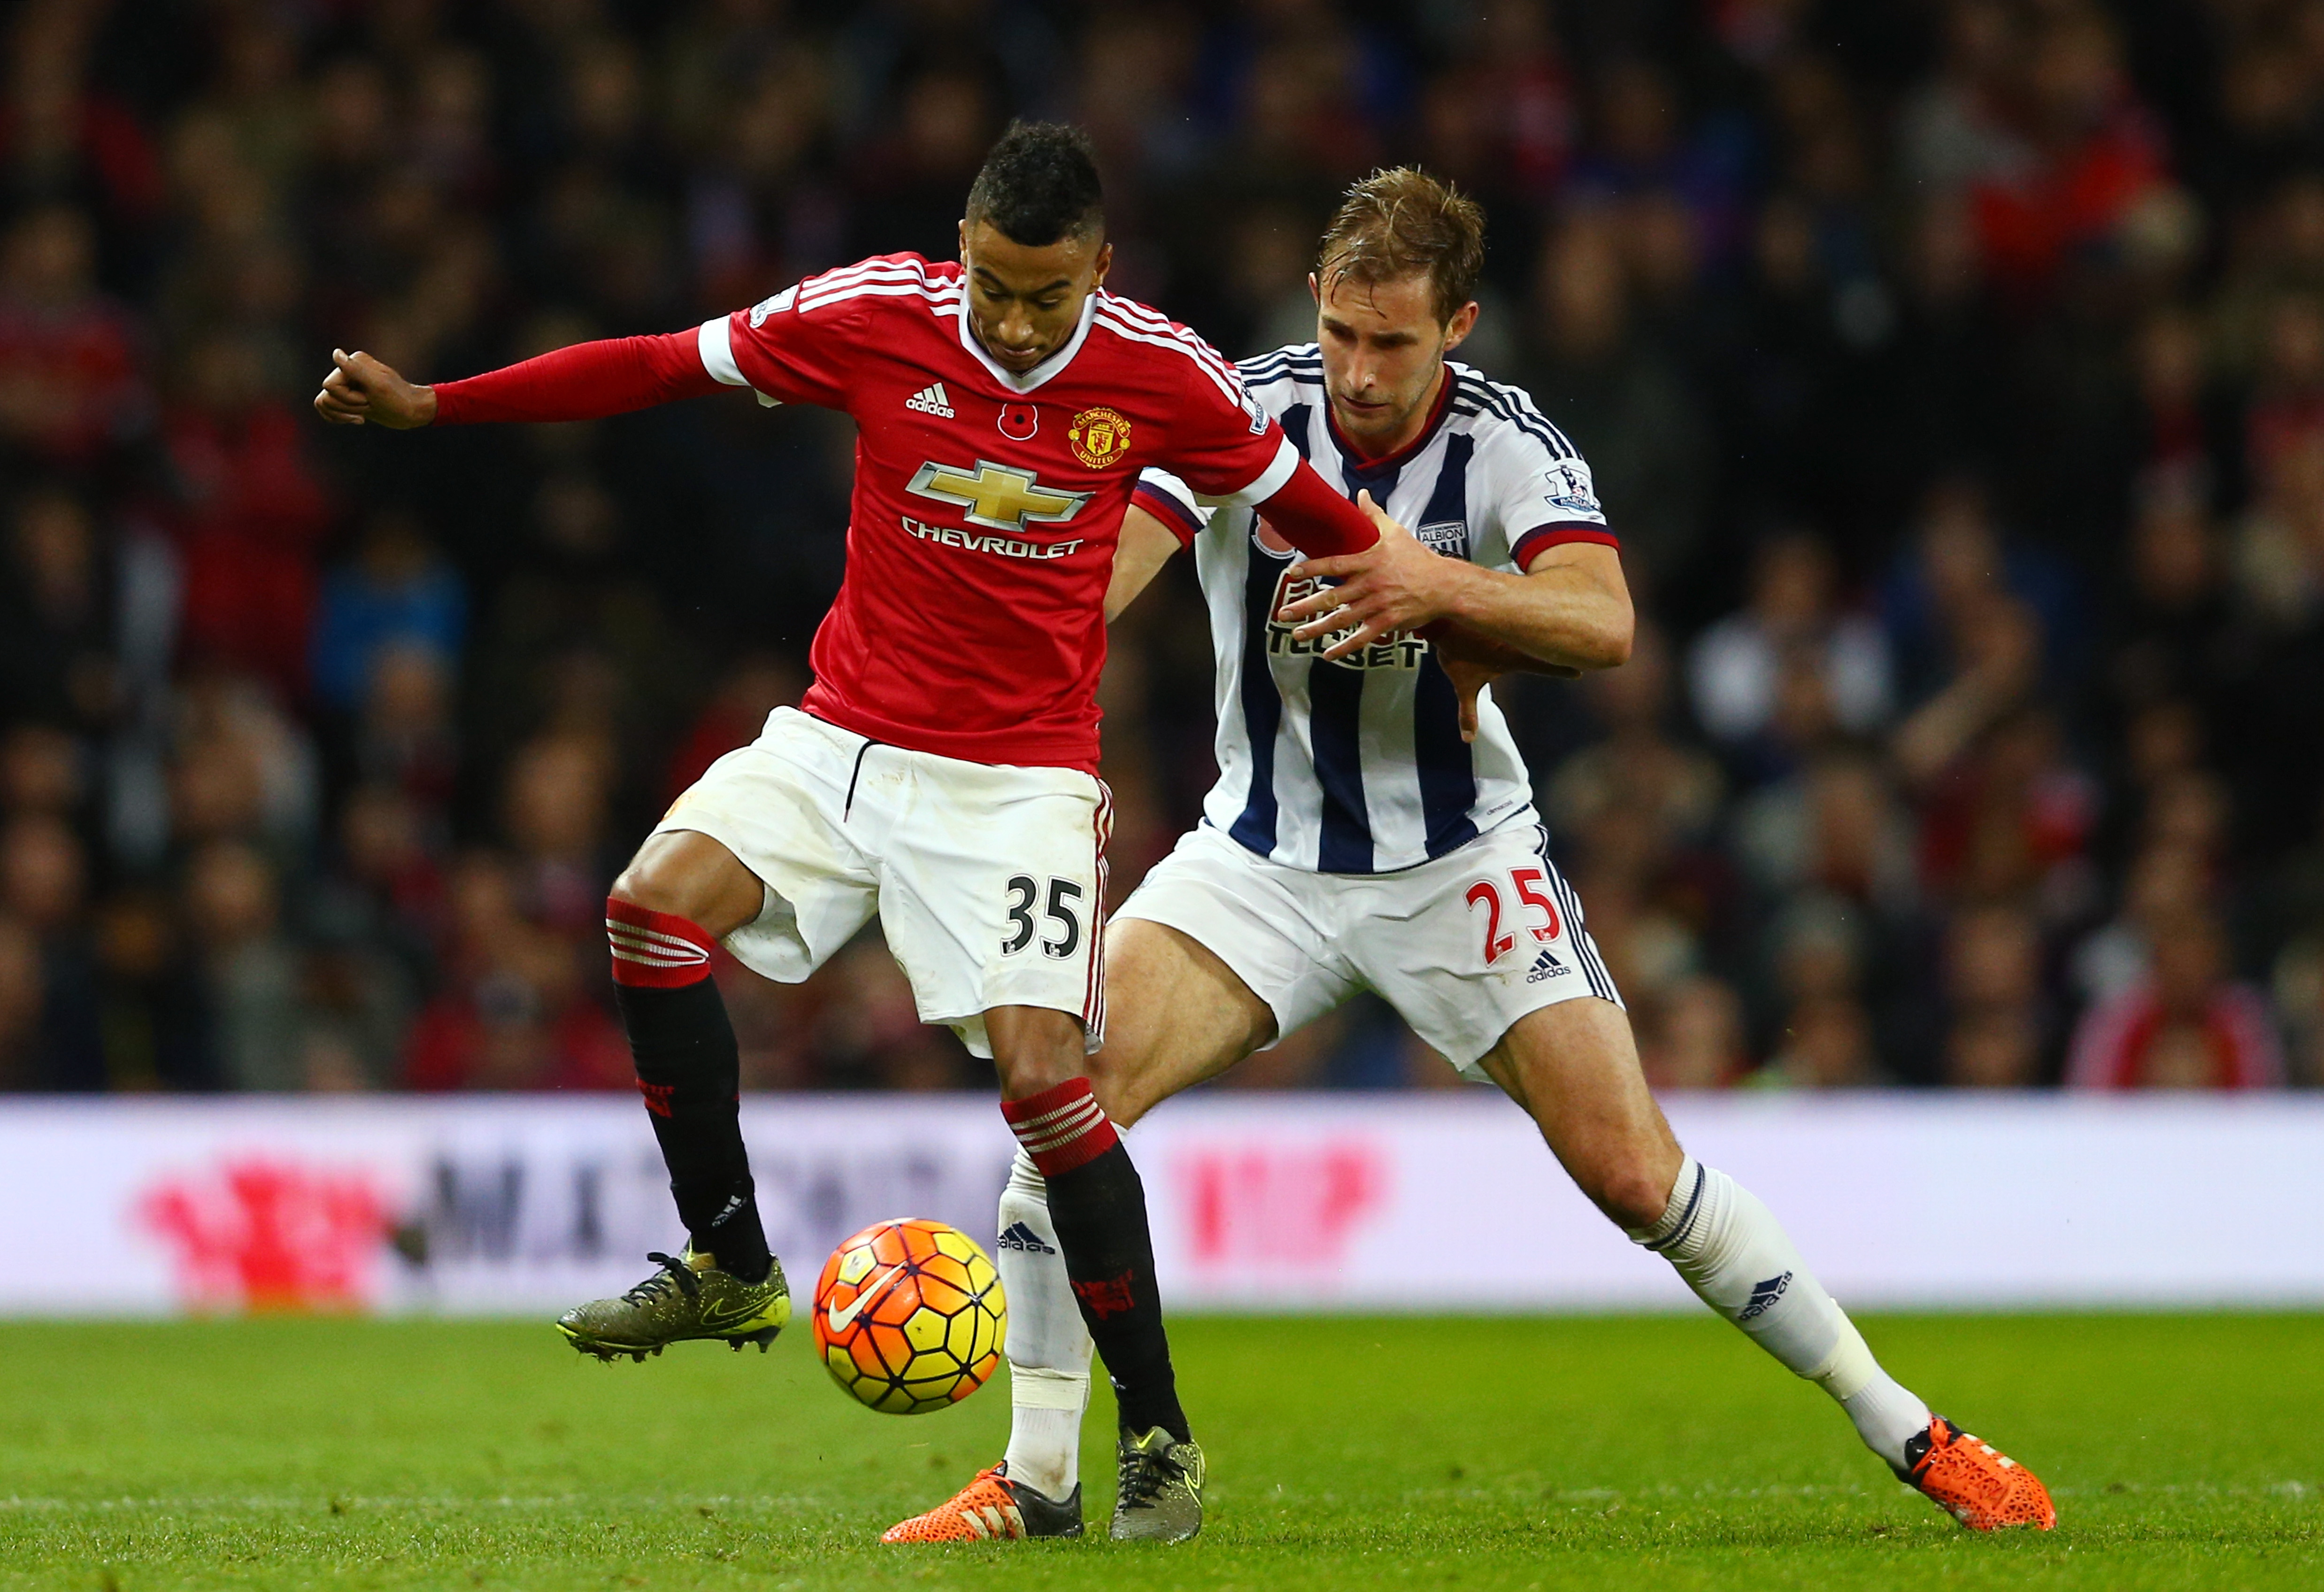 Manchester United vs. West Brom preview: 5 key factors